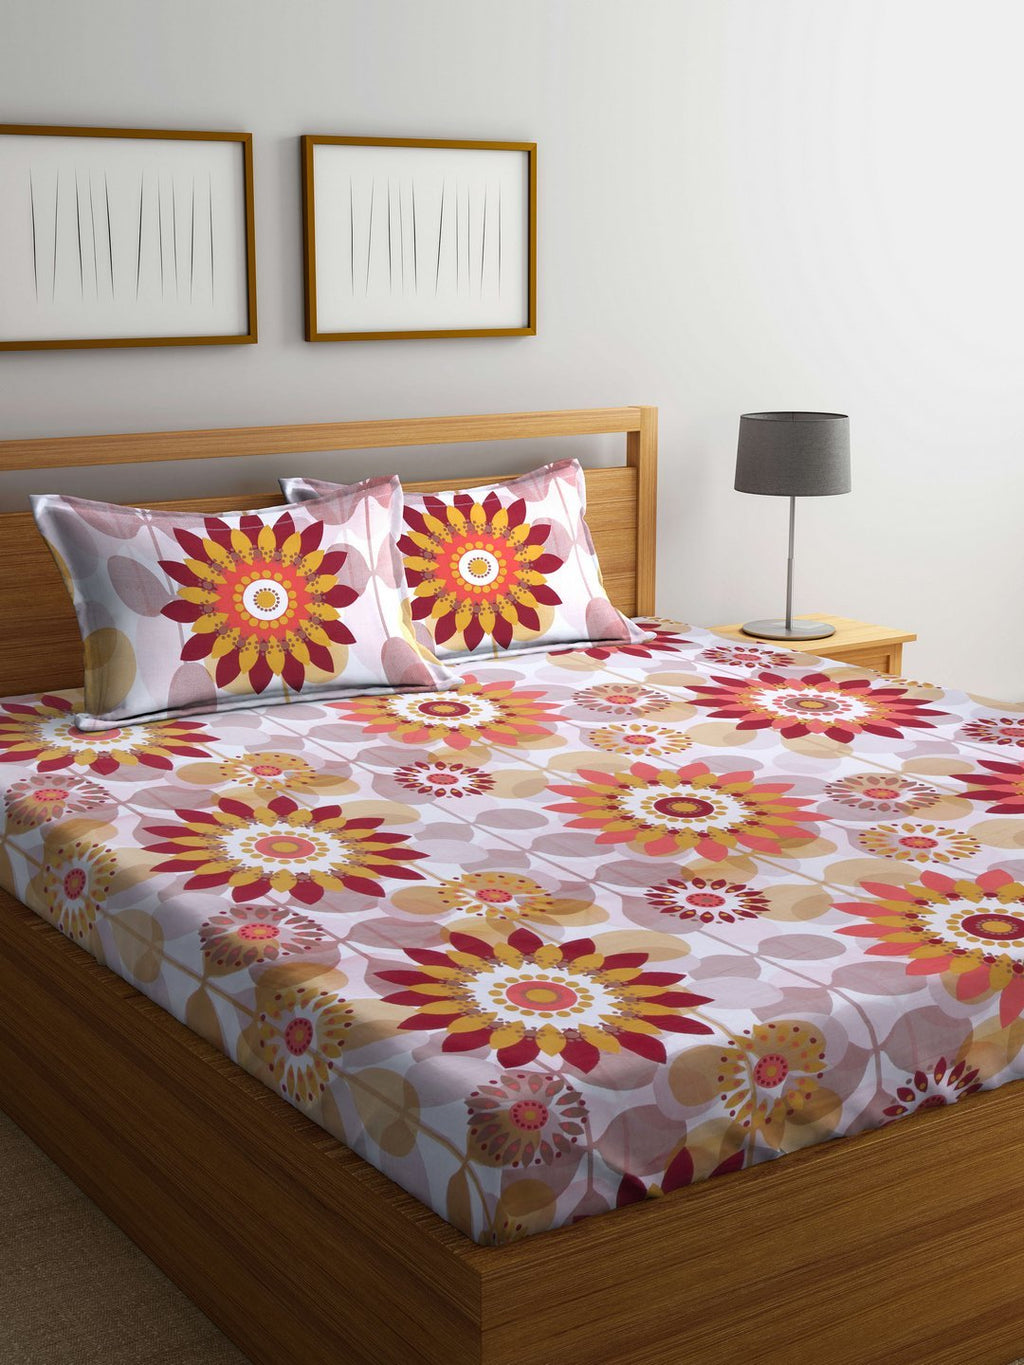 mafatlal-cotton-cream-180-tc-double-bedsheet-with-2-pillow-covers-HFBSARDLAS3035